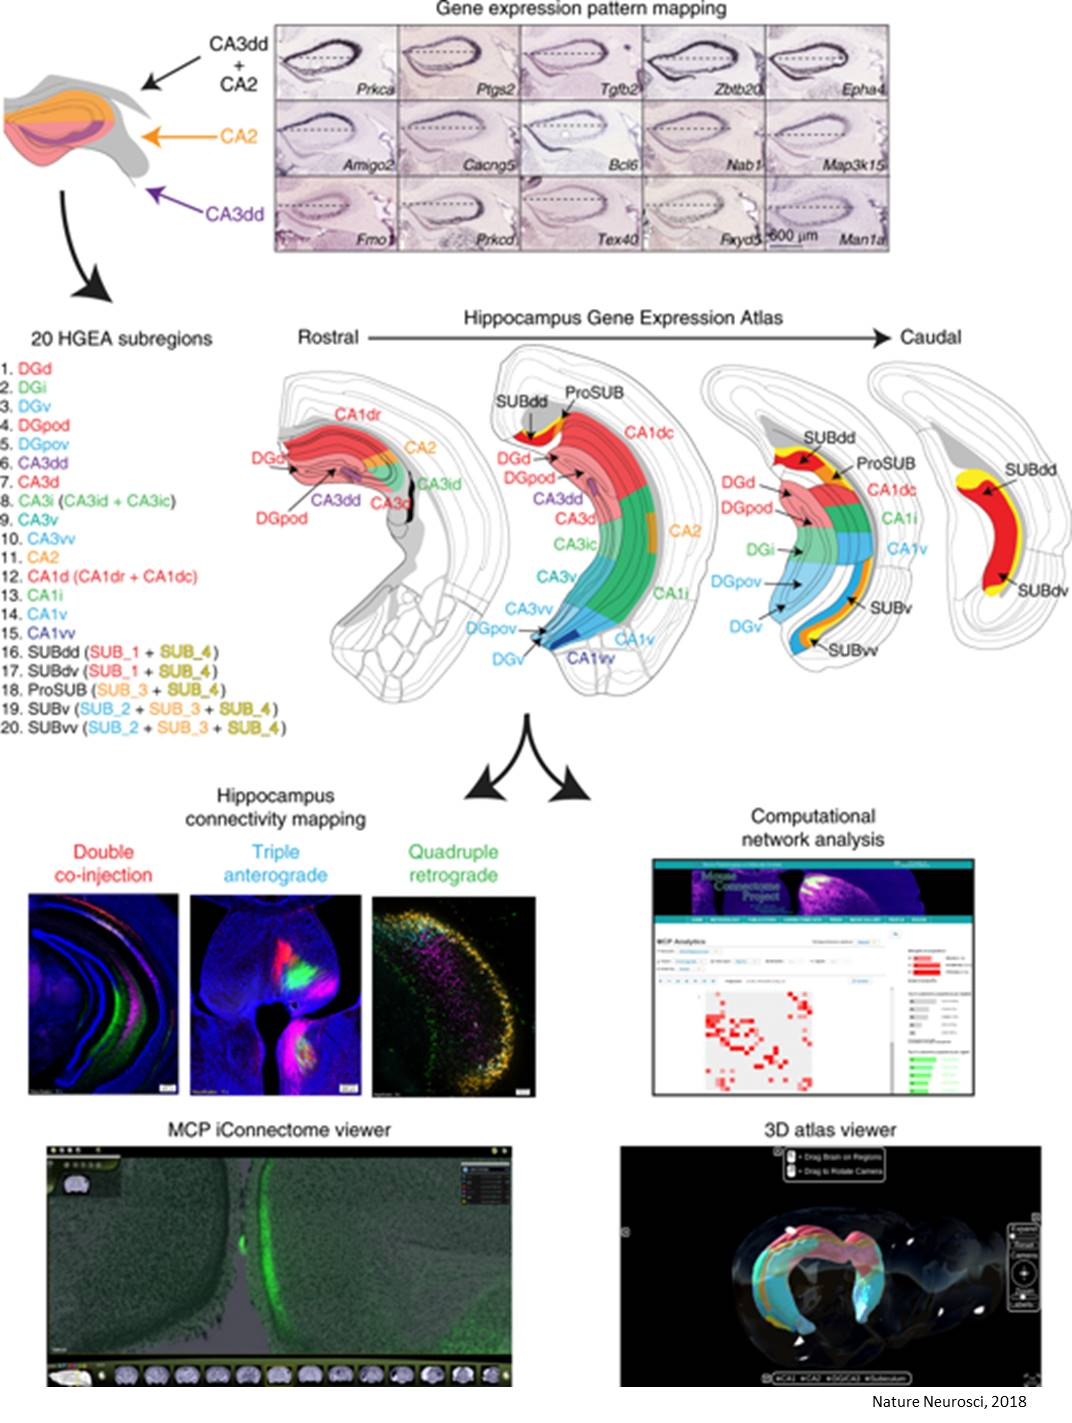 Hippocampal gene expression and connectivity mapping!